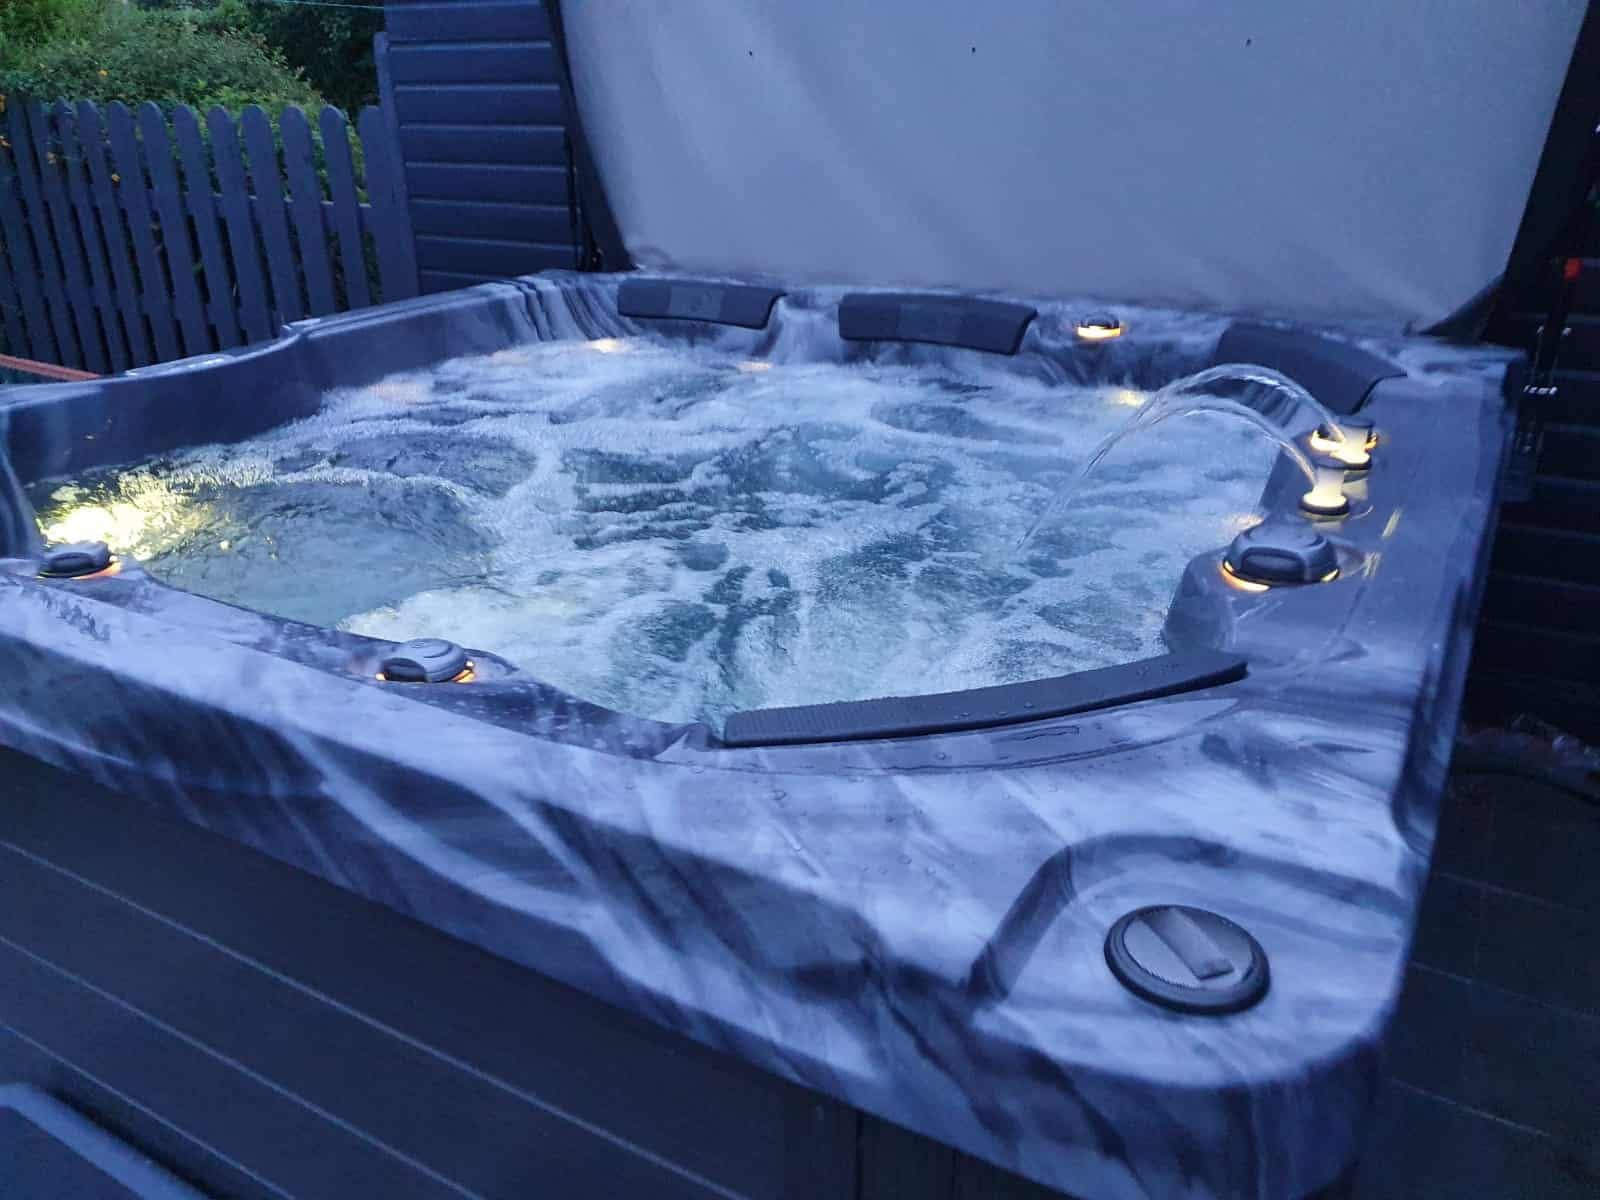 Fjij hot tub storm cloud grey